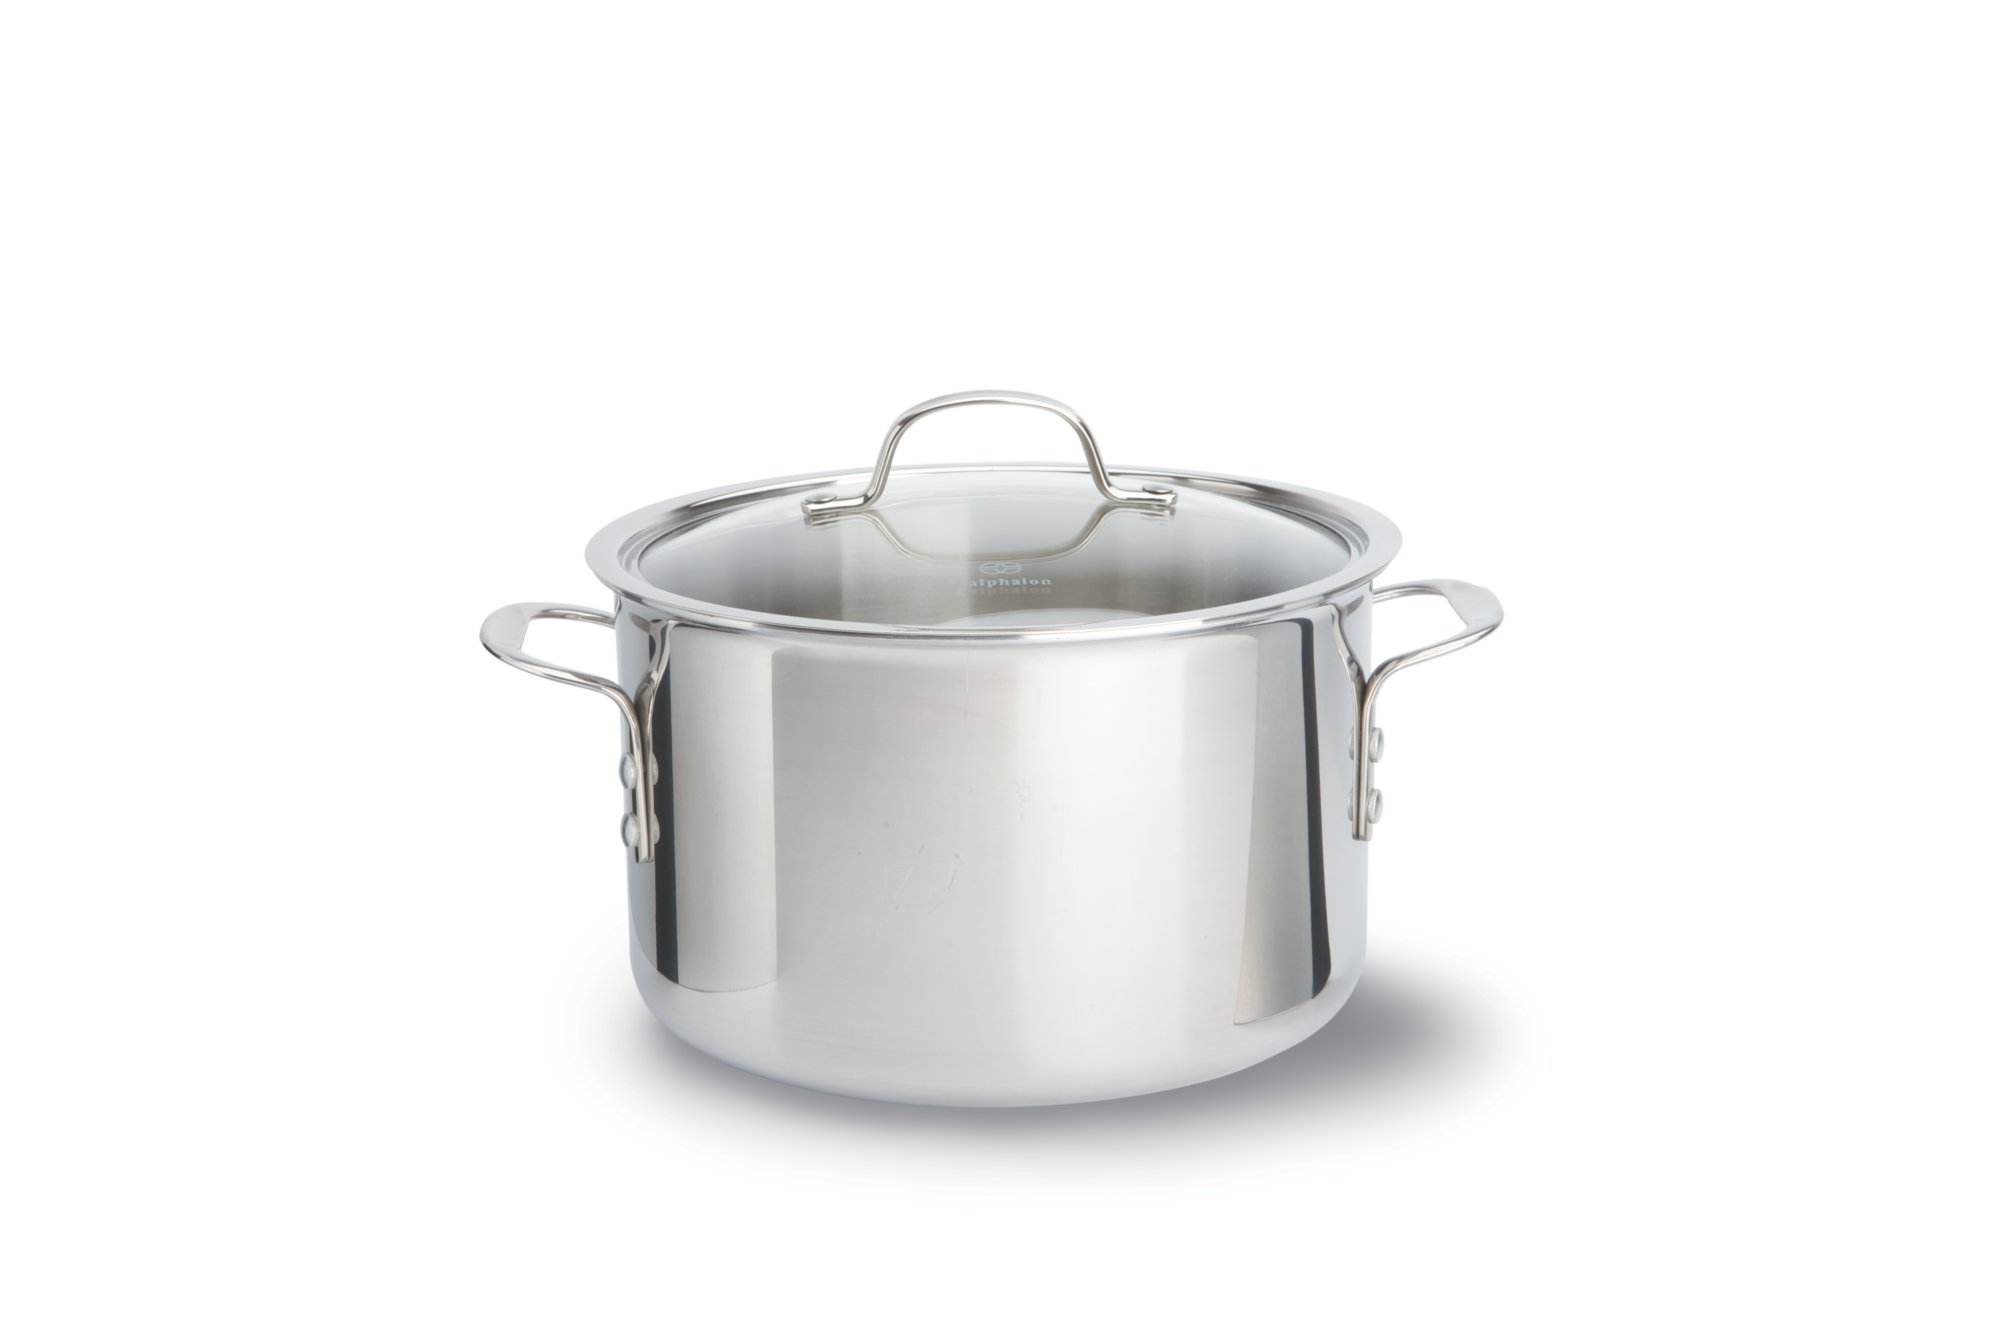 Calphalon Tri Ply Stainless Steel 8 Qt Stock Pot With Cover